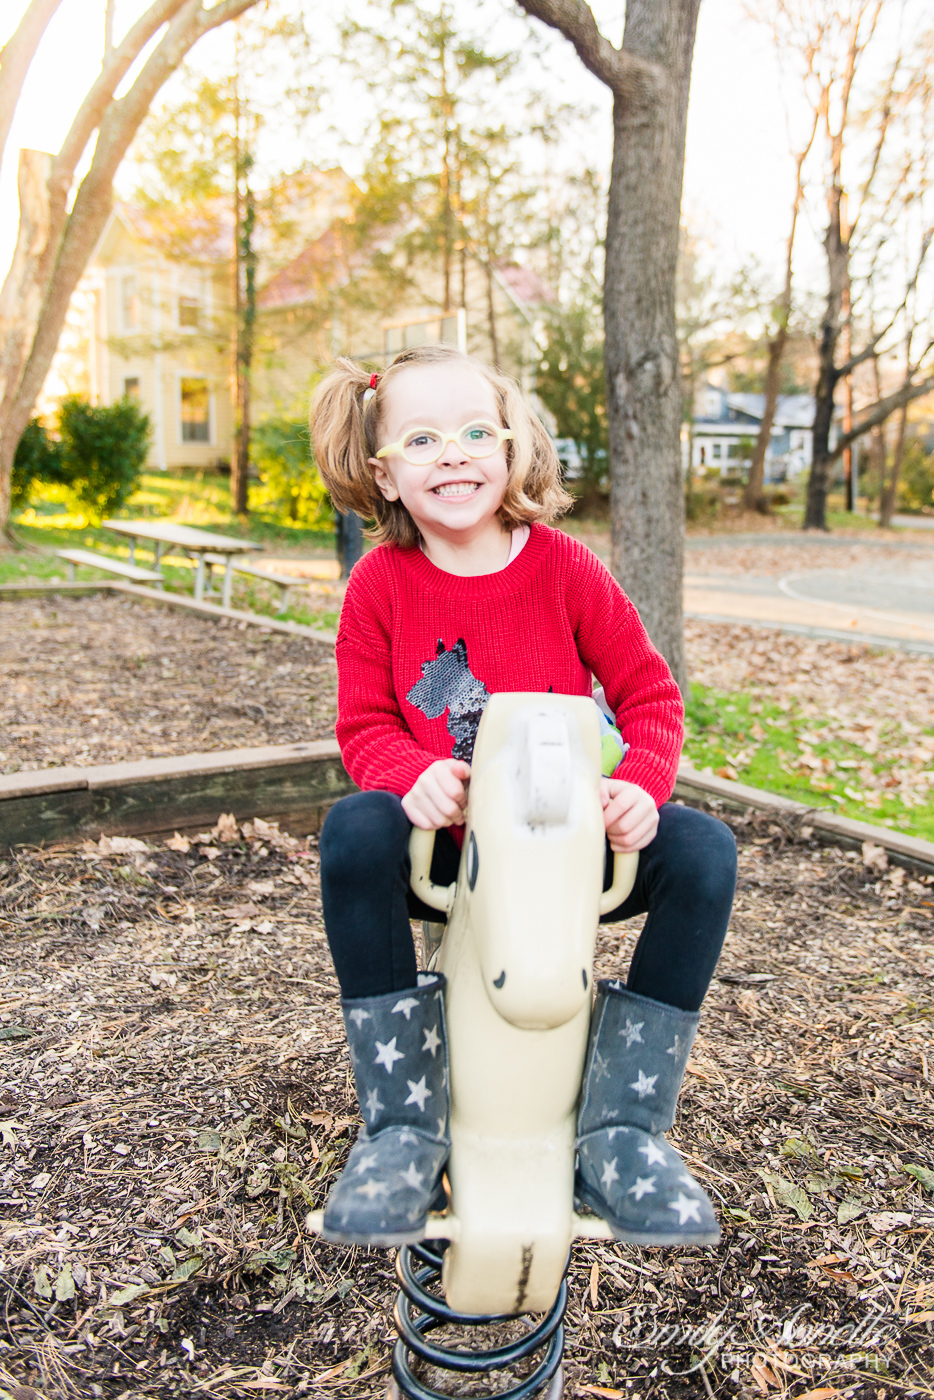 A young girl playing at Clifton Town Park in Fairfax County, Virginia